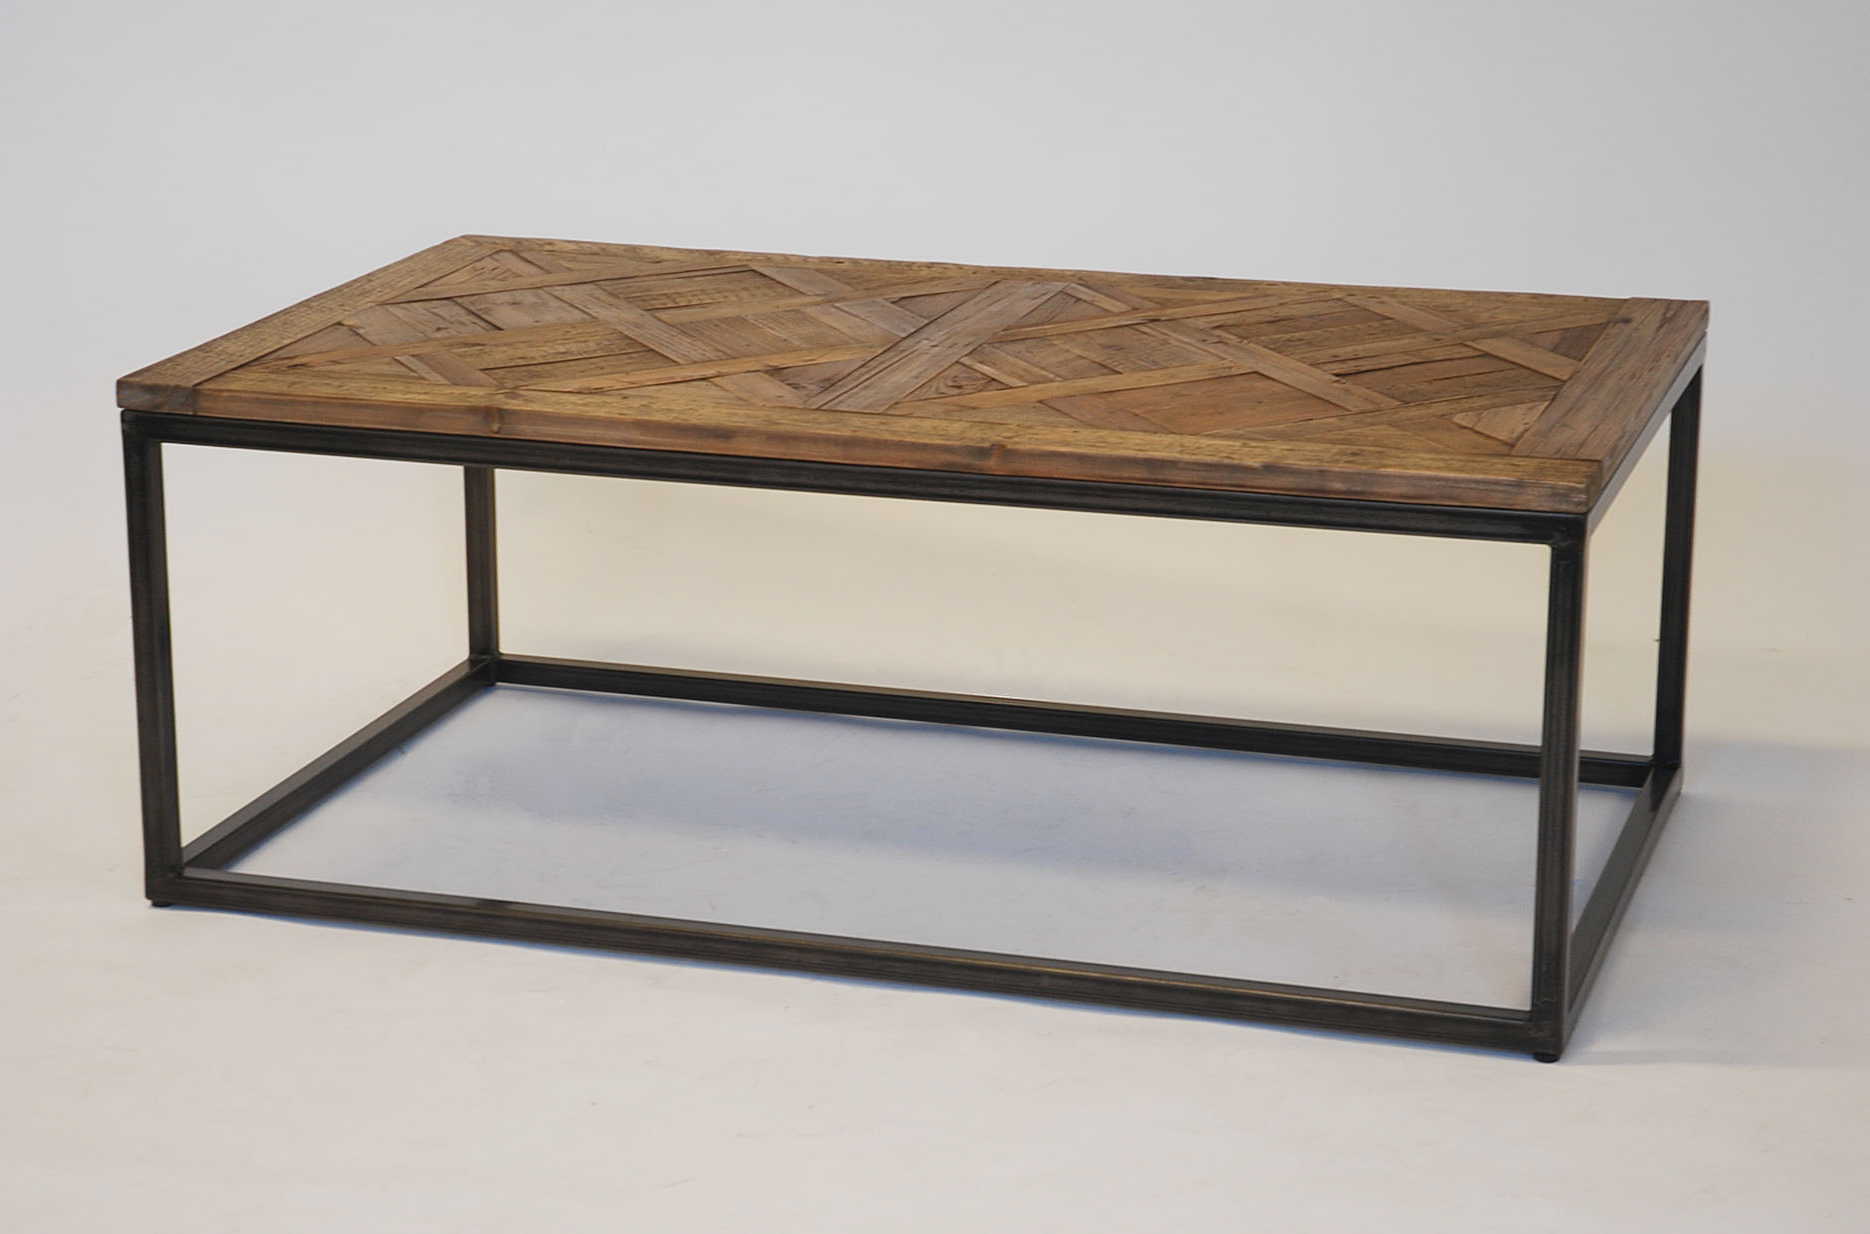 Hire & Rental With Regard To Parquet Coffee Tables (View 4 of 20)